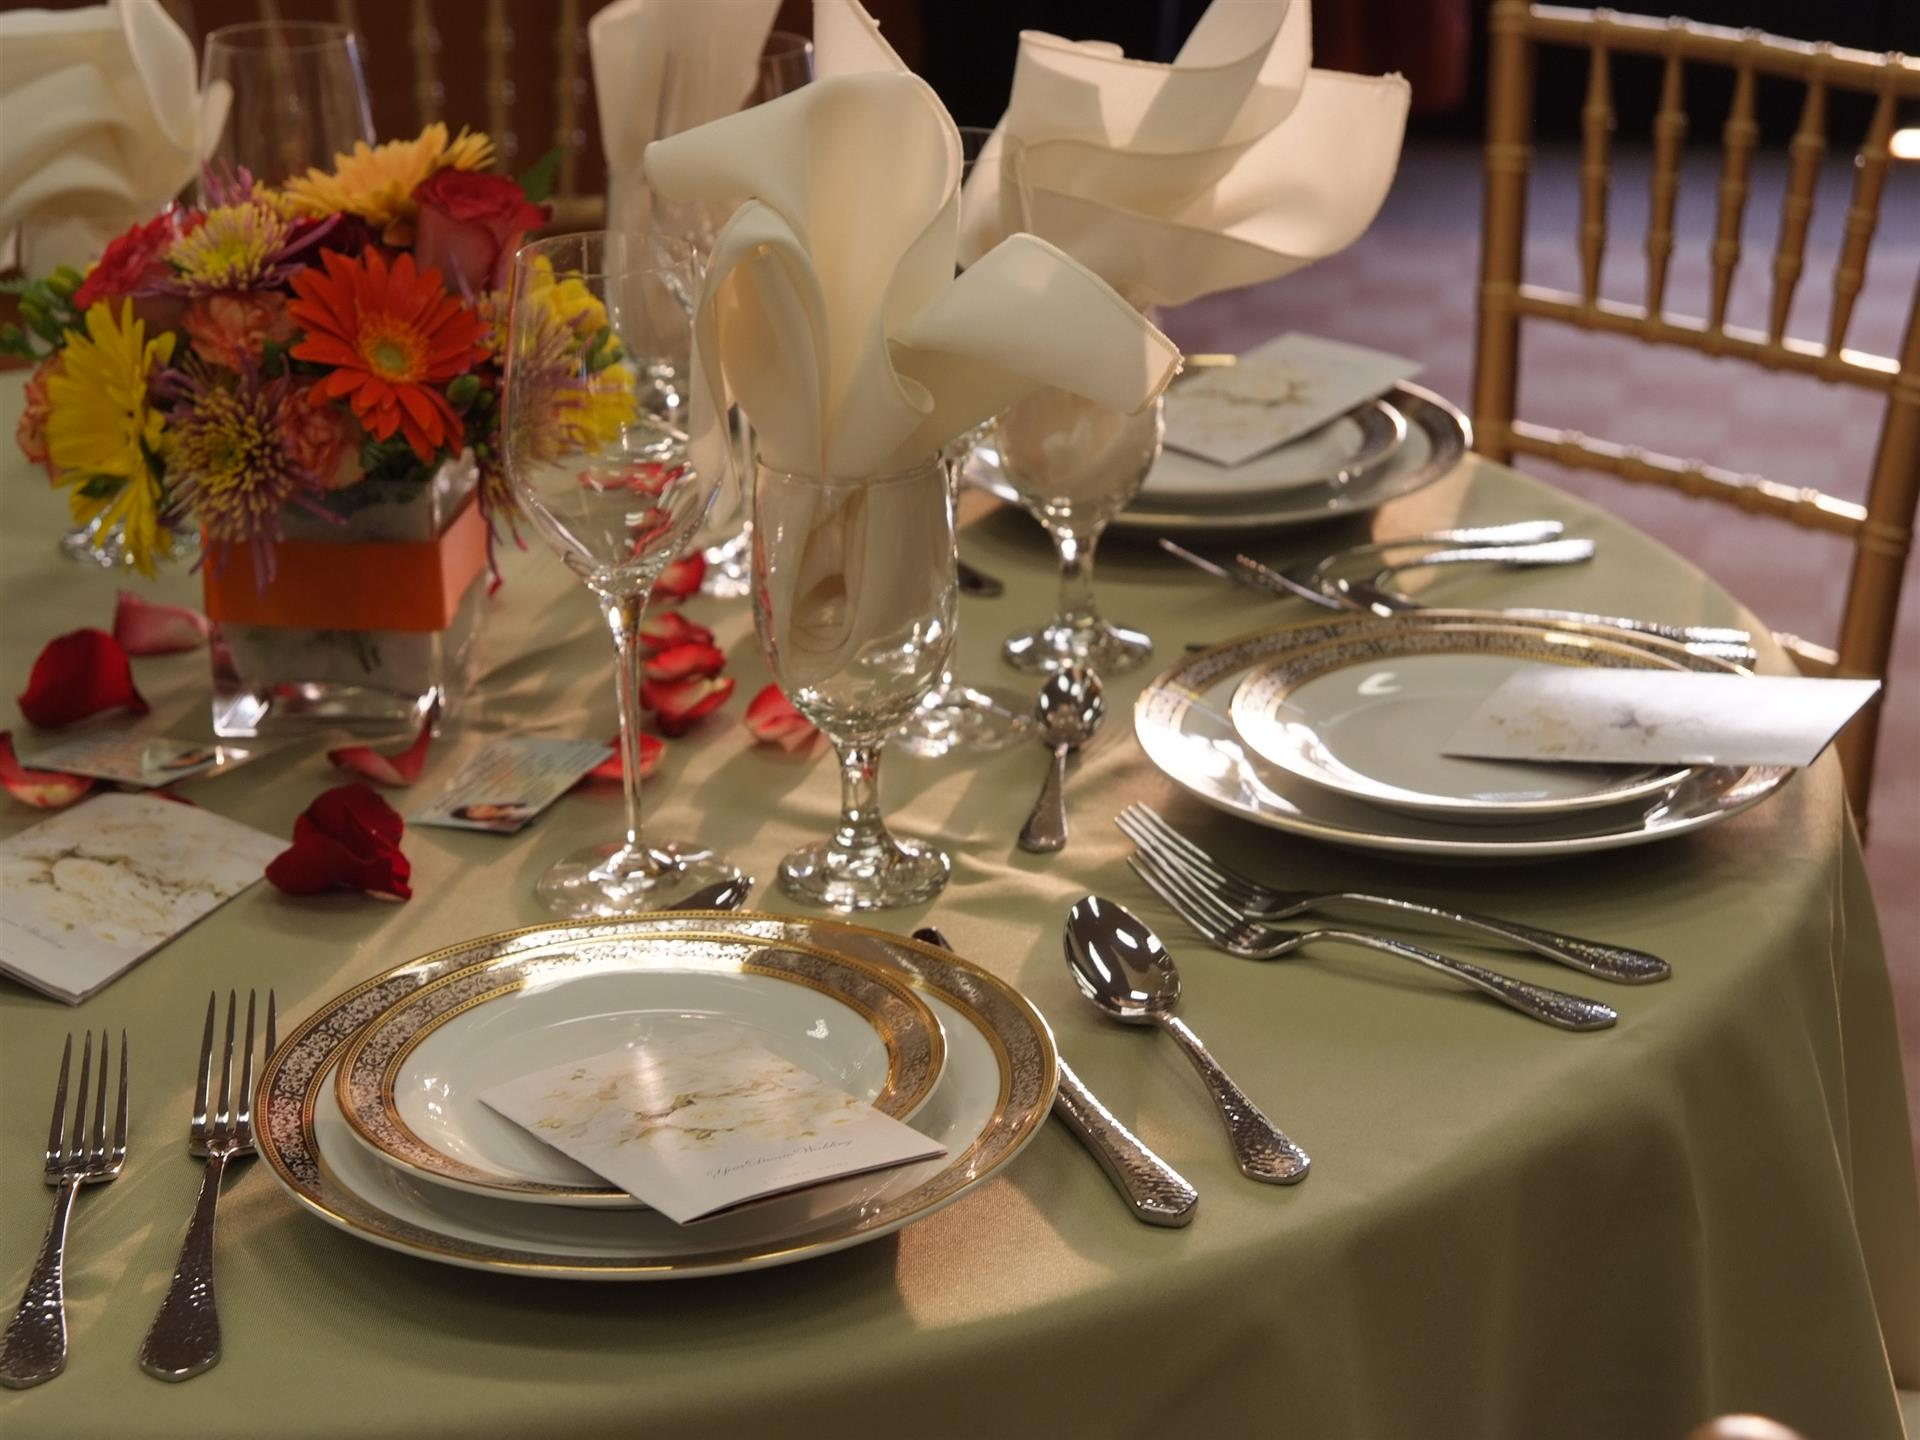 Fancy placesettings on covered table